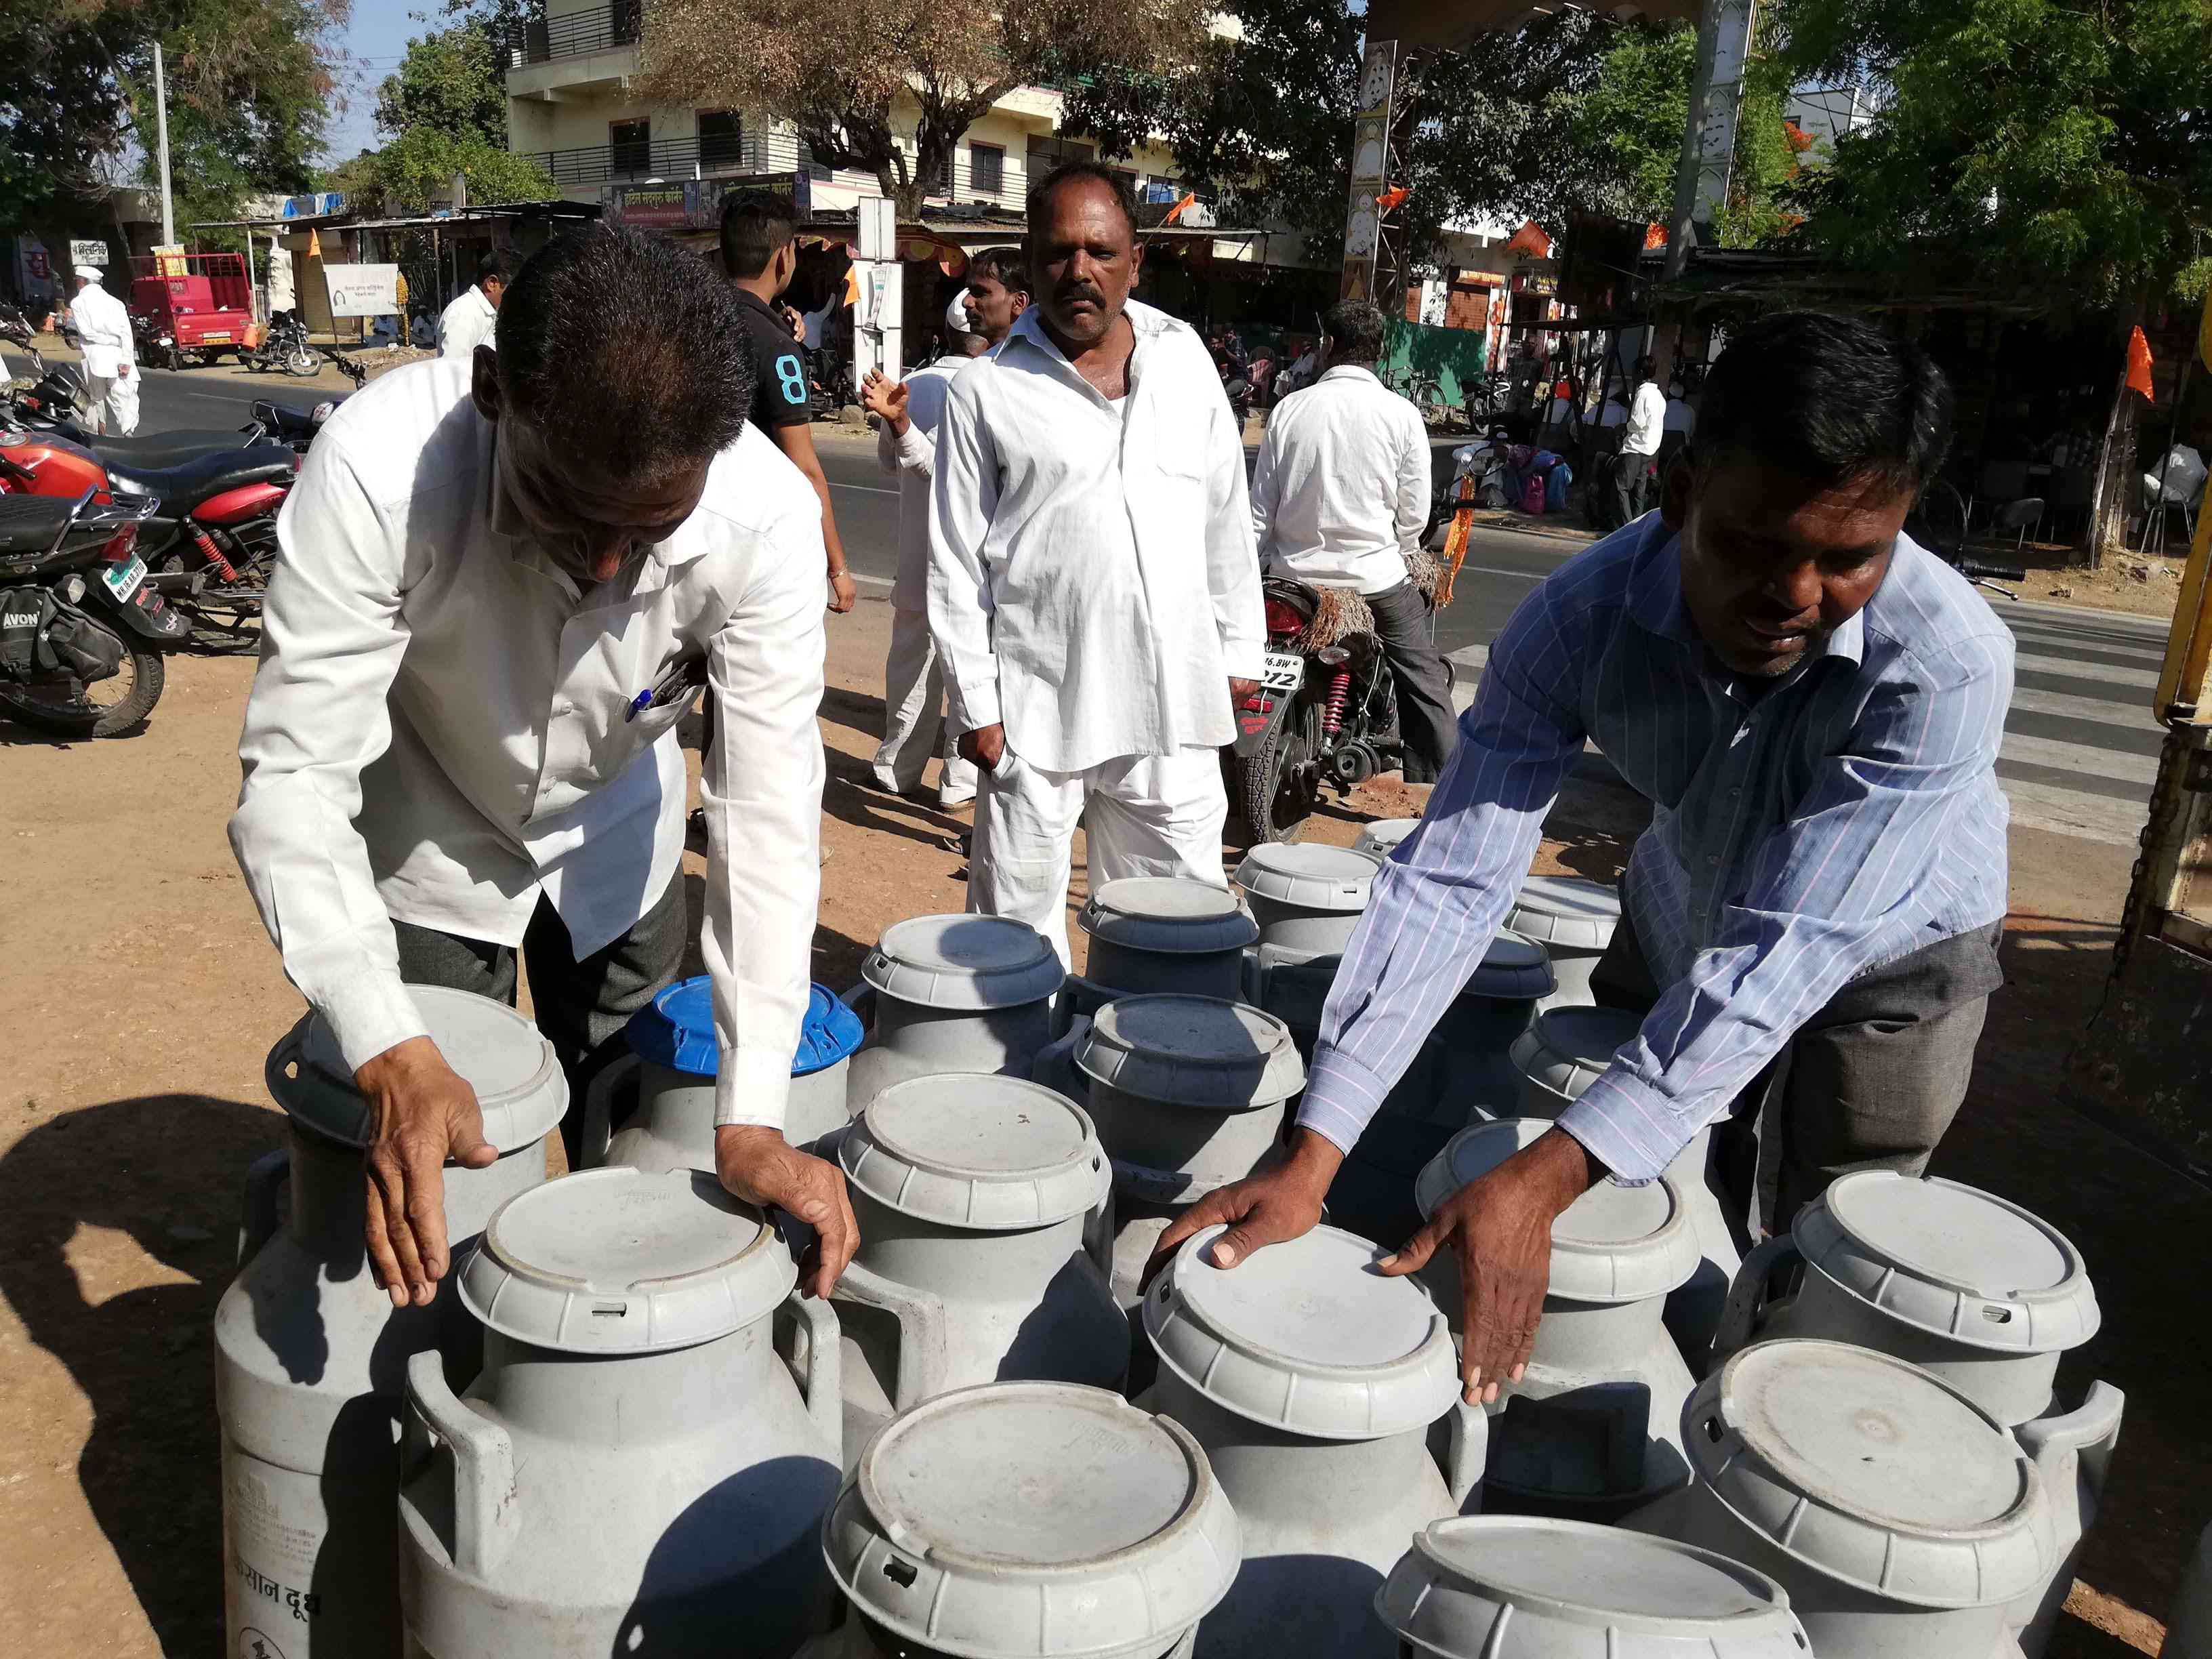 Dairy farmers in Ahmednagar are upset that milk prices have fallen under the present government. (Photo credit: Mridula Chari).